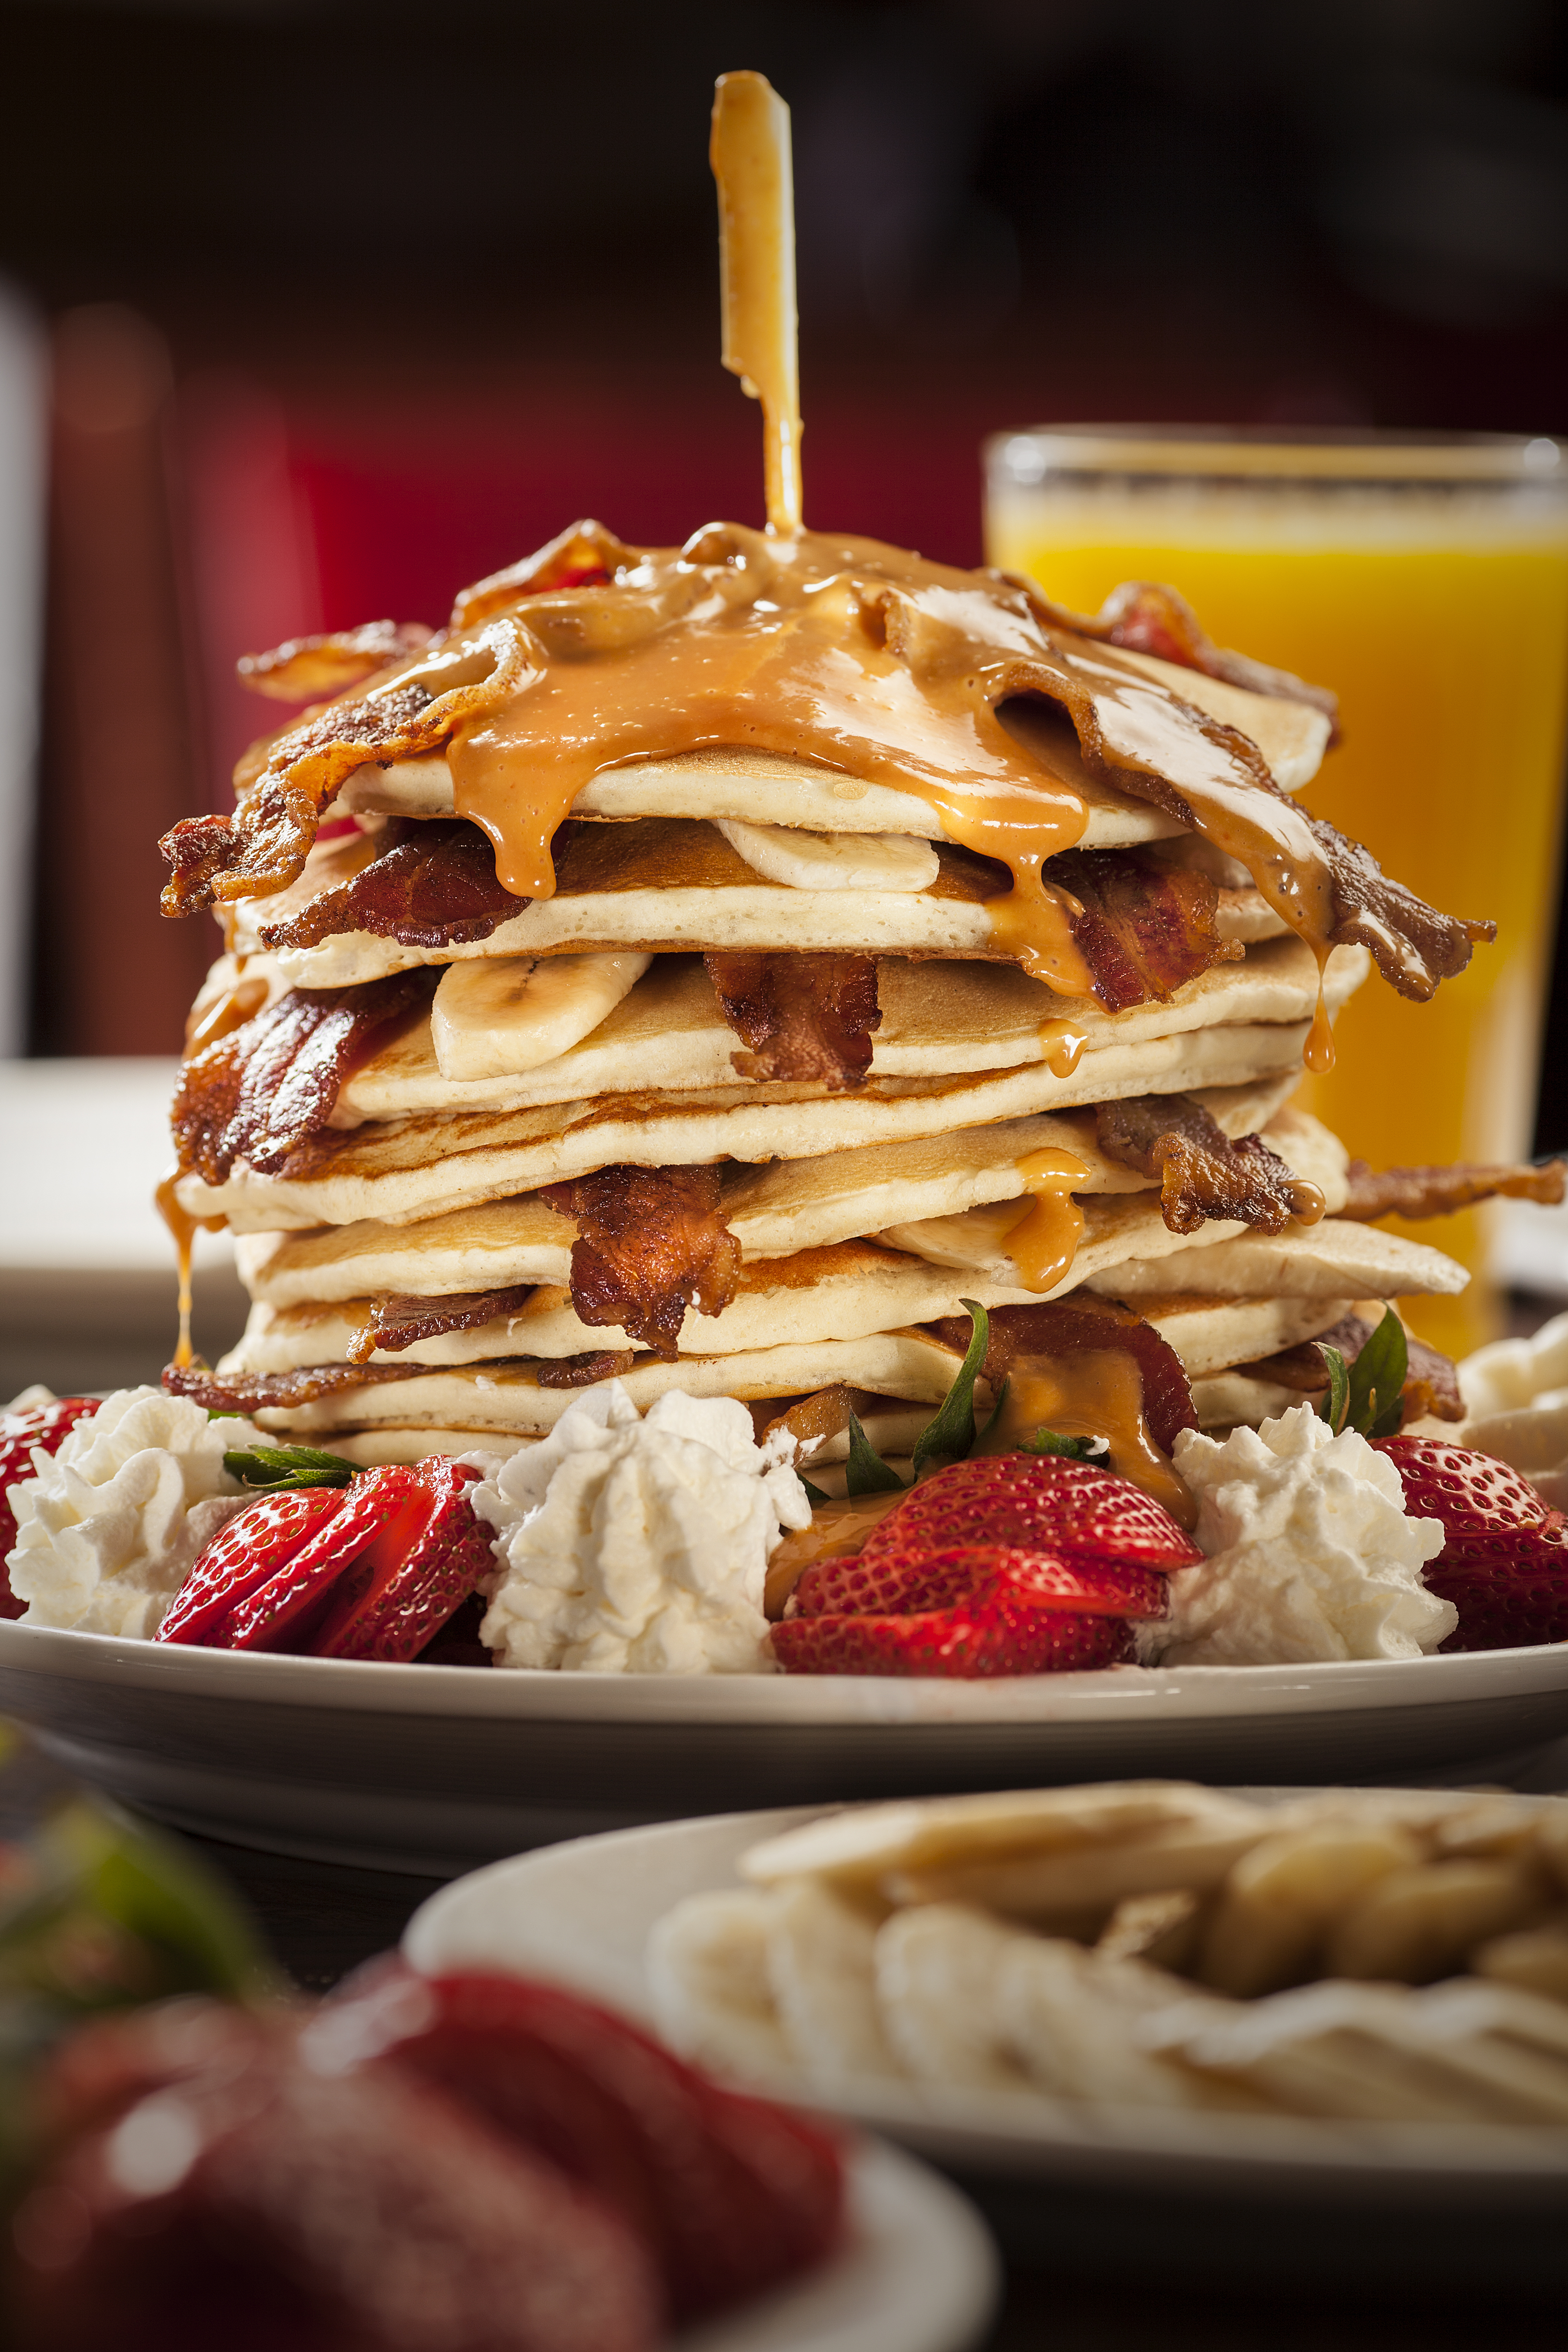 The King pancakes at Mr. Lucky